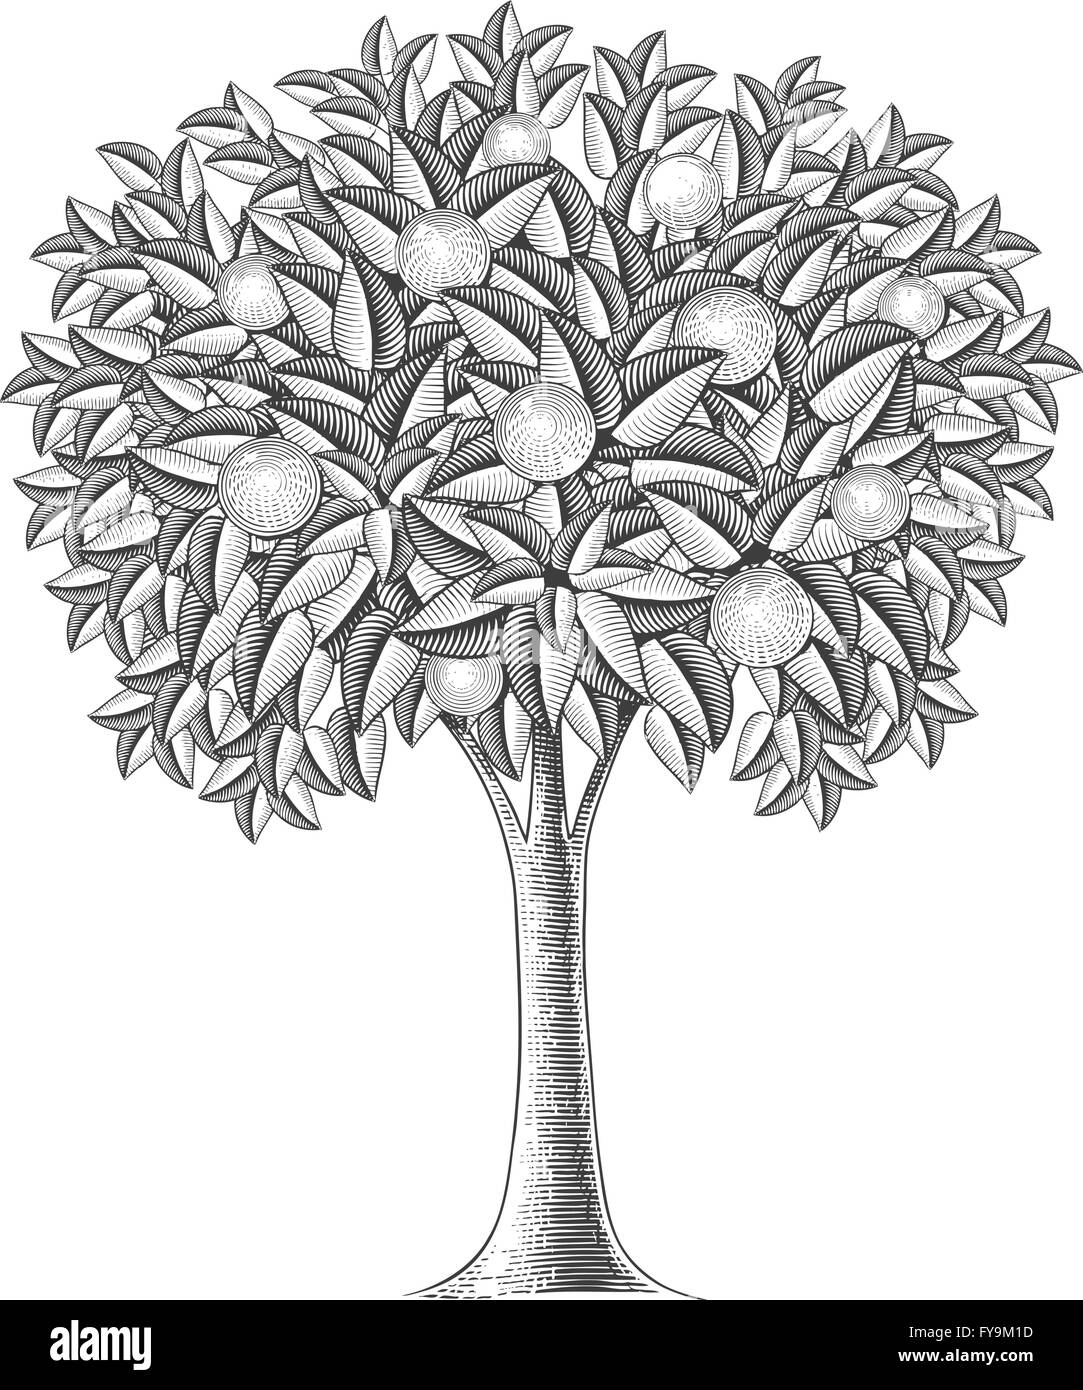 Fruit tree in engraving style - Stock Vector